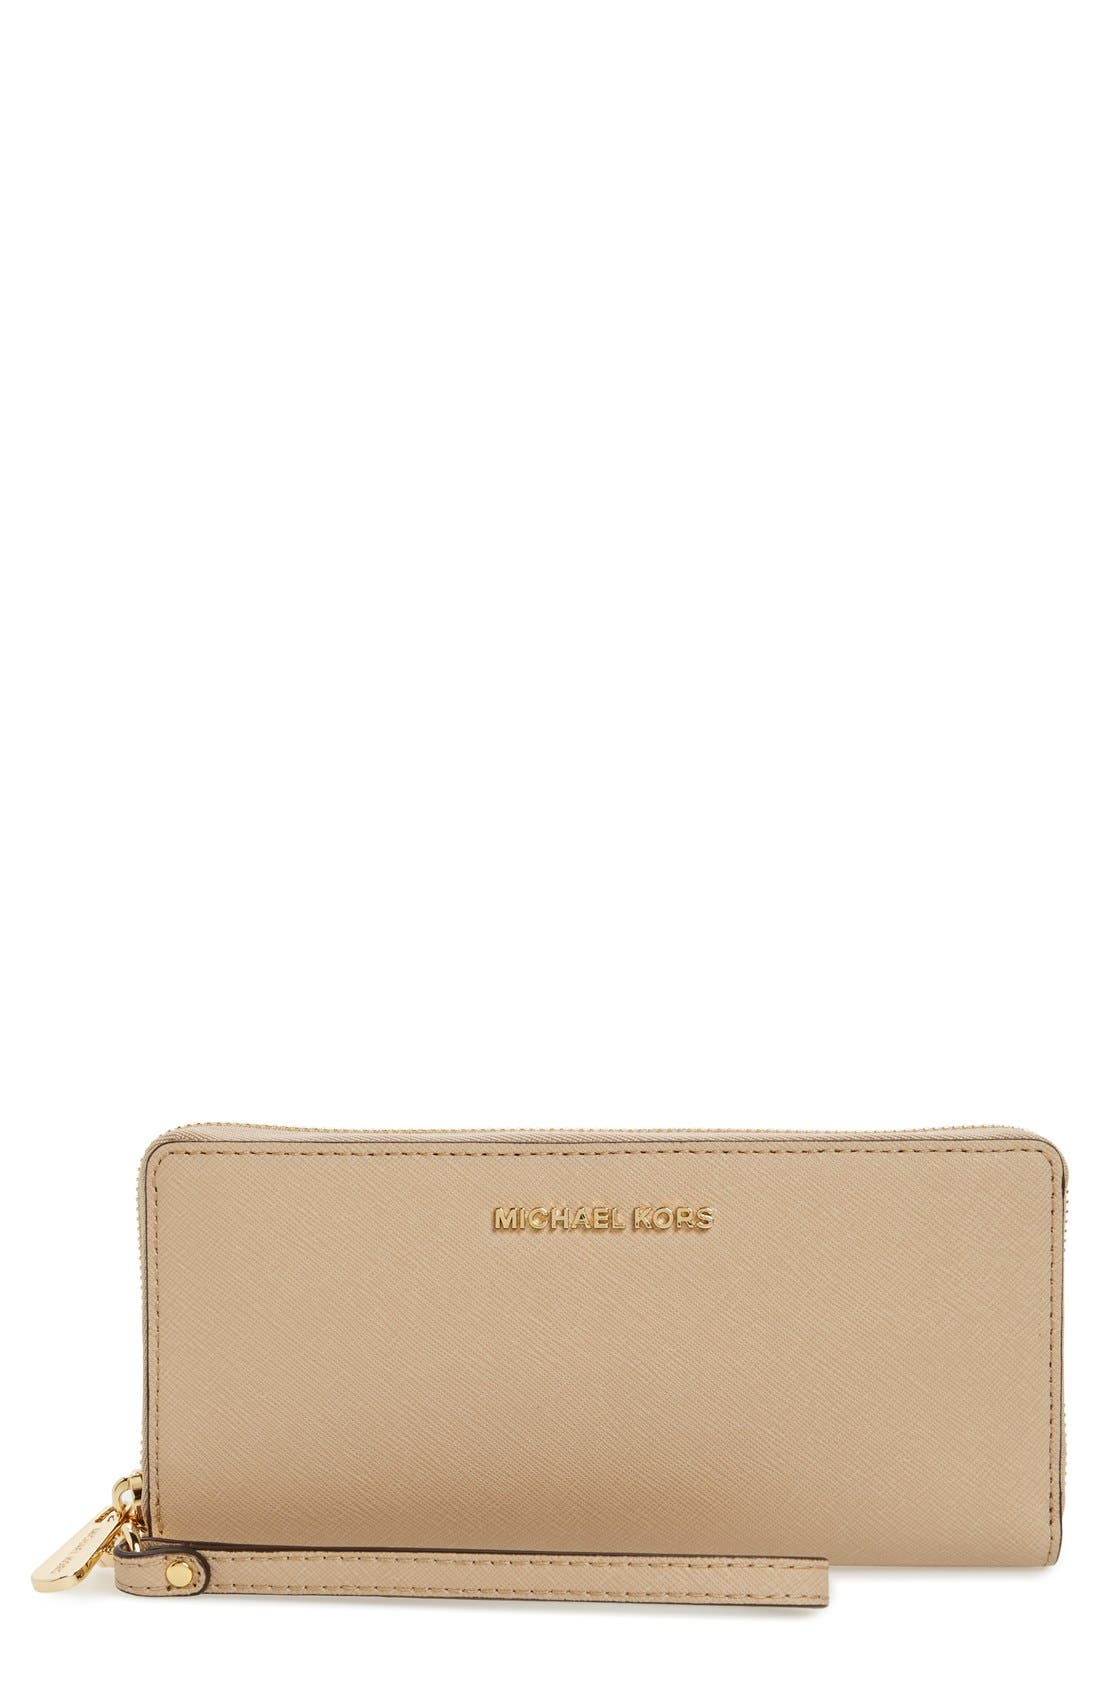 'Jet Set' Leather Travel Wallet,                             Main thumbnail 5, color,